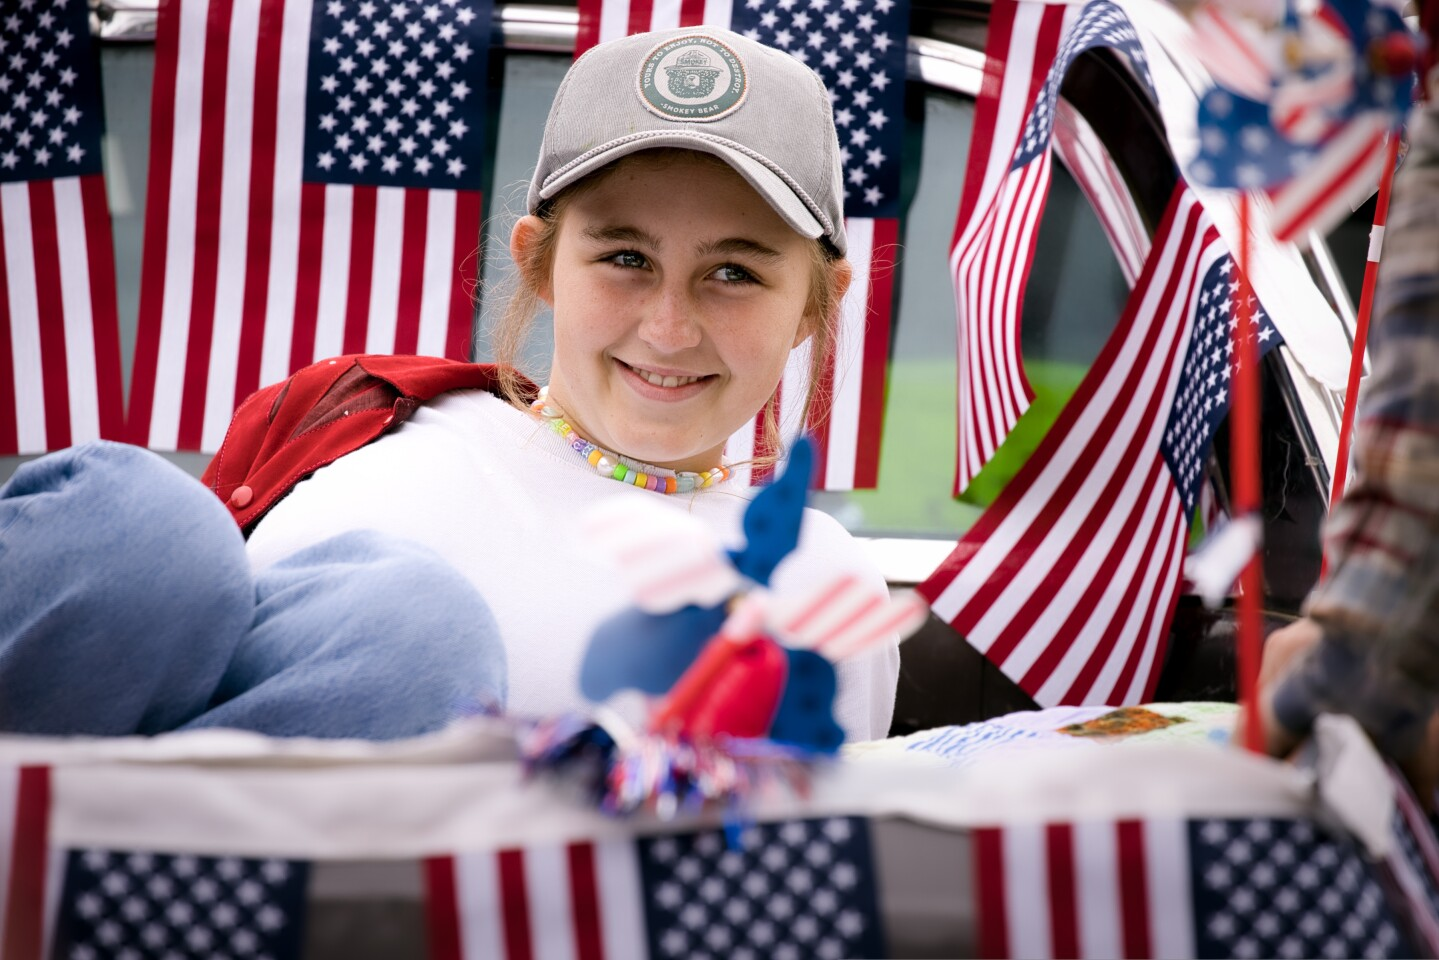 Revelers gathered Sunday for the World's Shortest Parade in Aptos marking the first Independence Day post-pandemic.